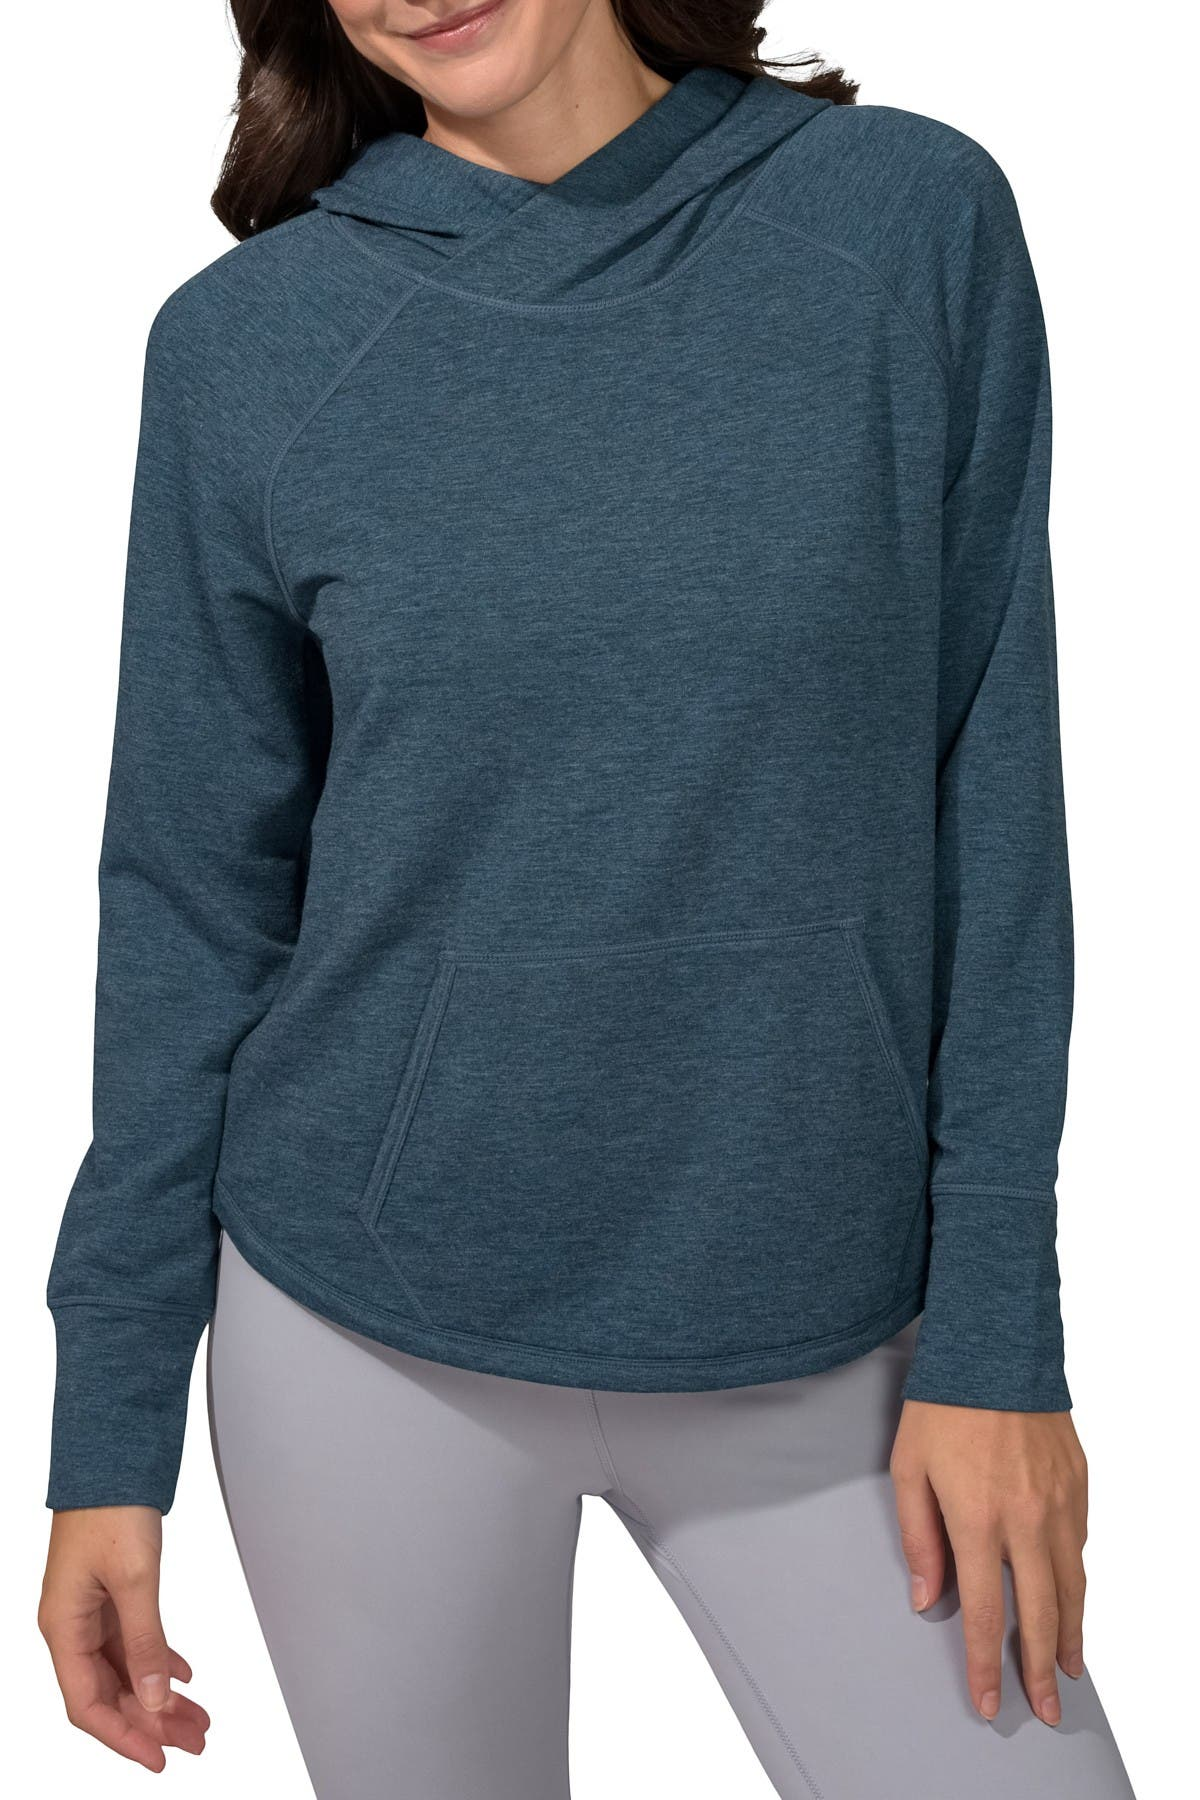 Image of 90 Degree By Reflex Brushed Hoodie with Front Pocket